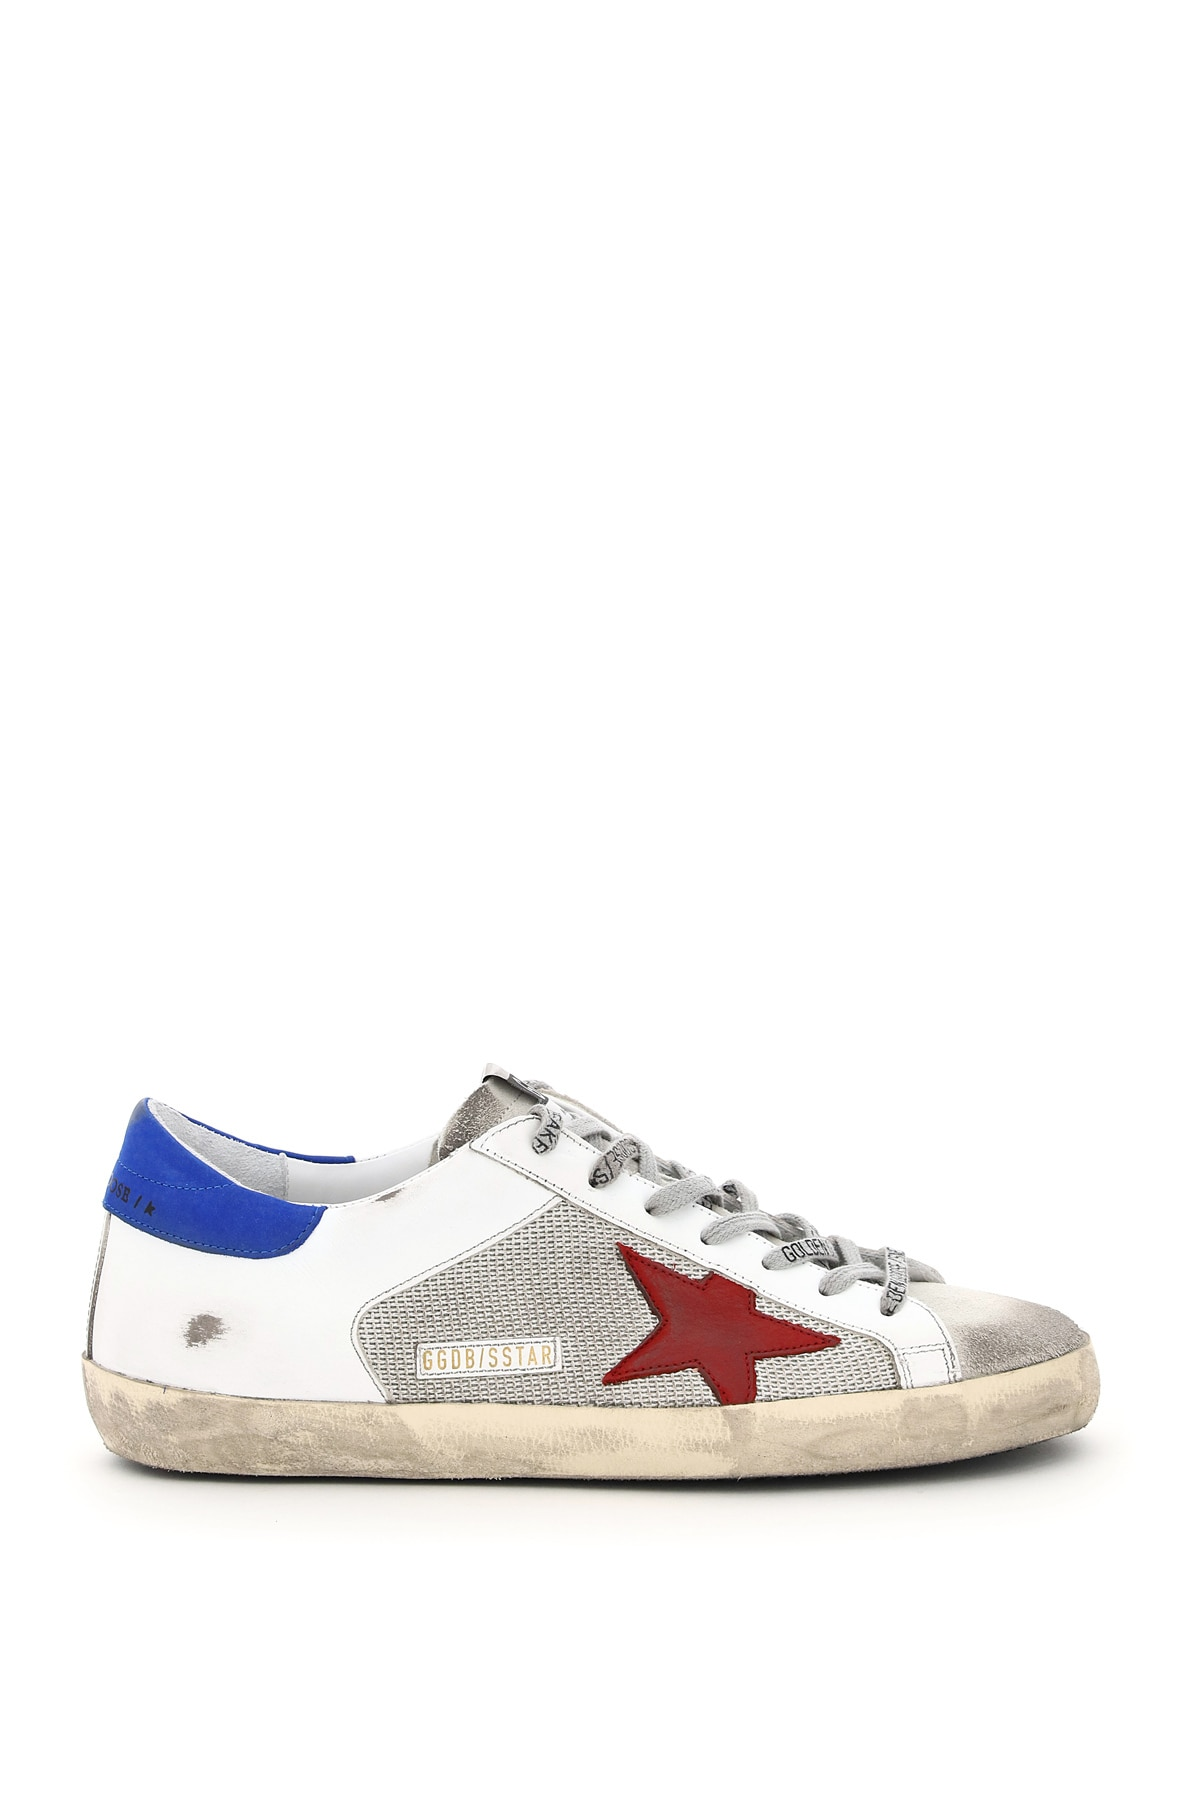 GOLDEN GOOSE SUPER-STAR DOUBLE QUARTER LEATHER AND MESH SNEAKERS 42 White, Blue, Red Leather, Techni